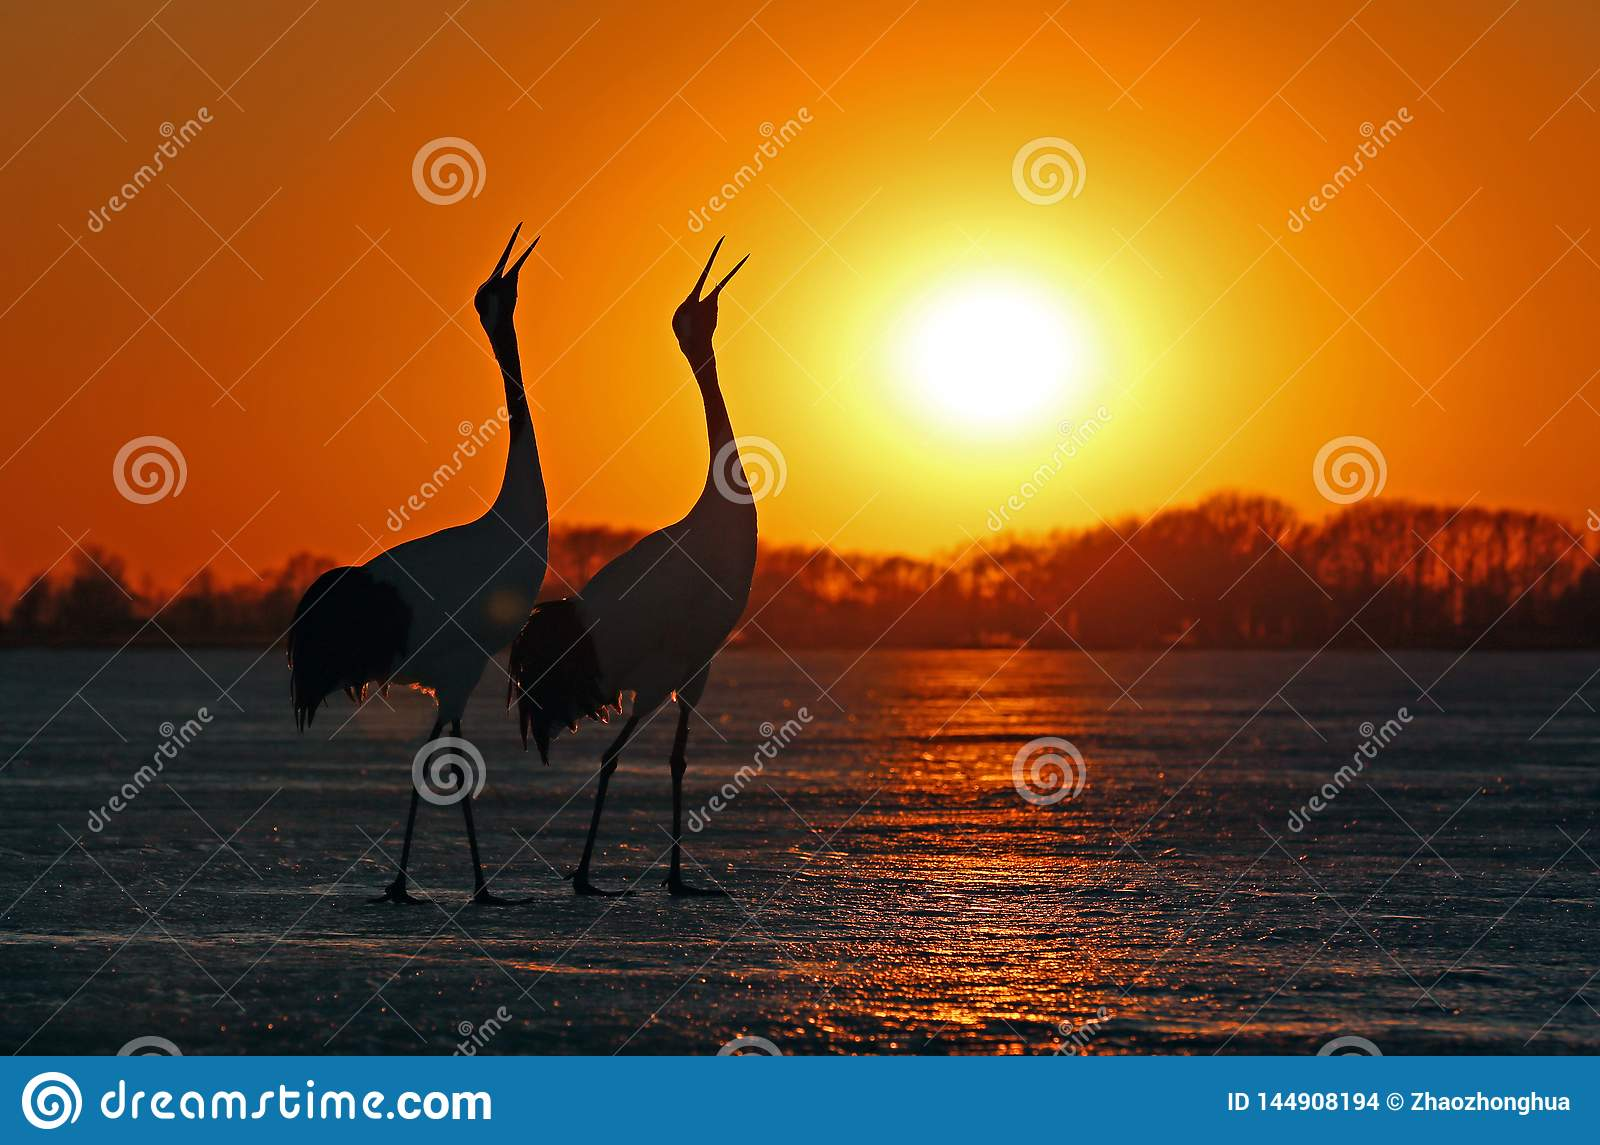 Red-crowned cranes sing loudly in the sunset